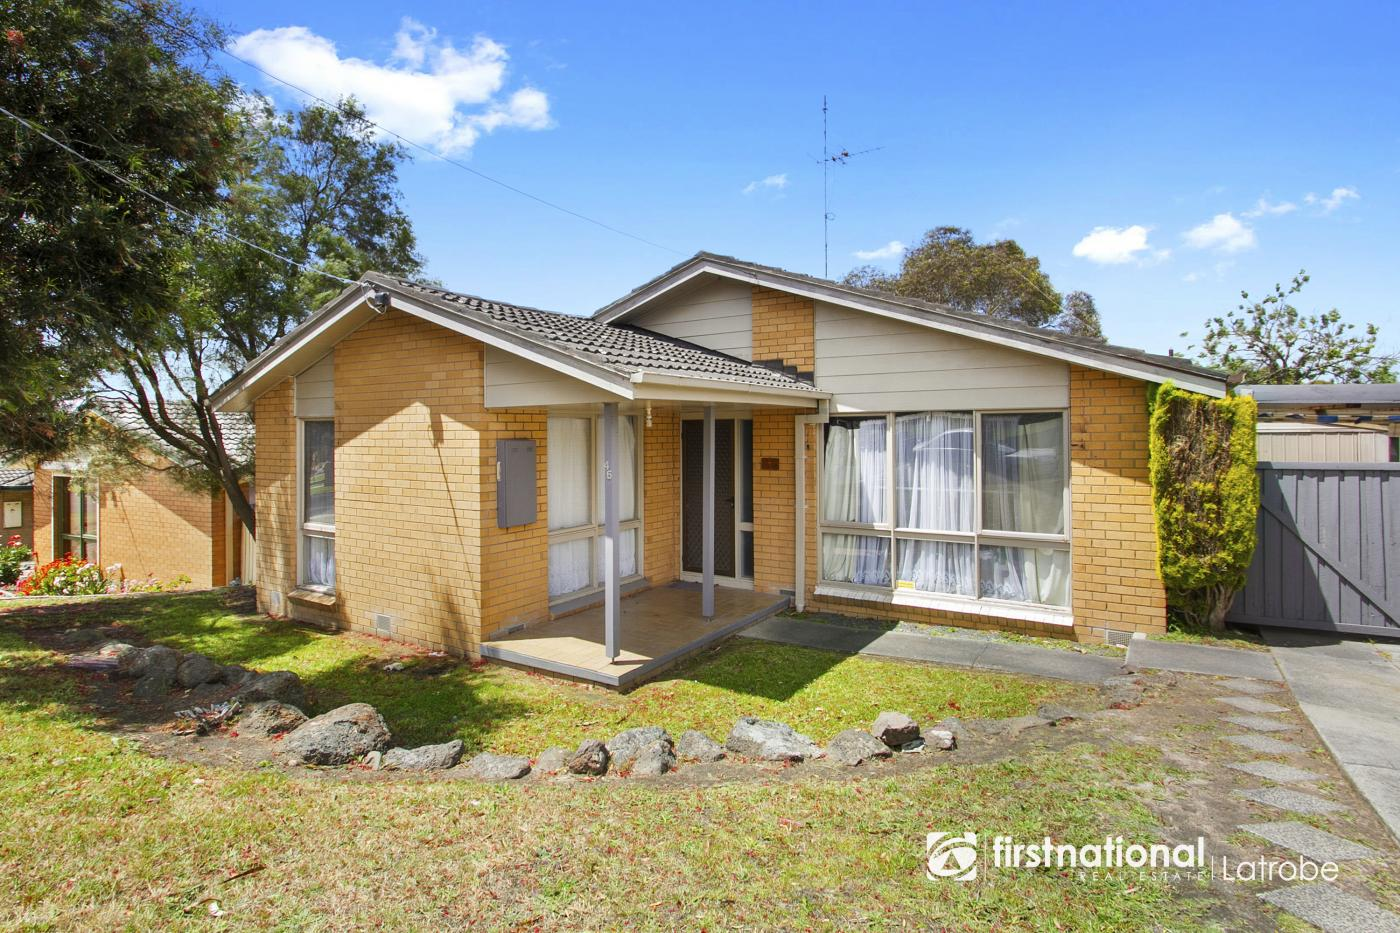 46-cameron-street-traralgon-vic-3844-real-estate-photo-2-xlarge-12290323